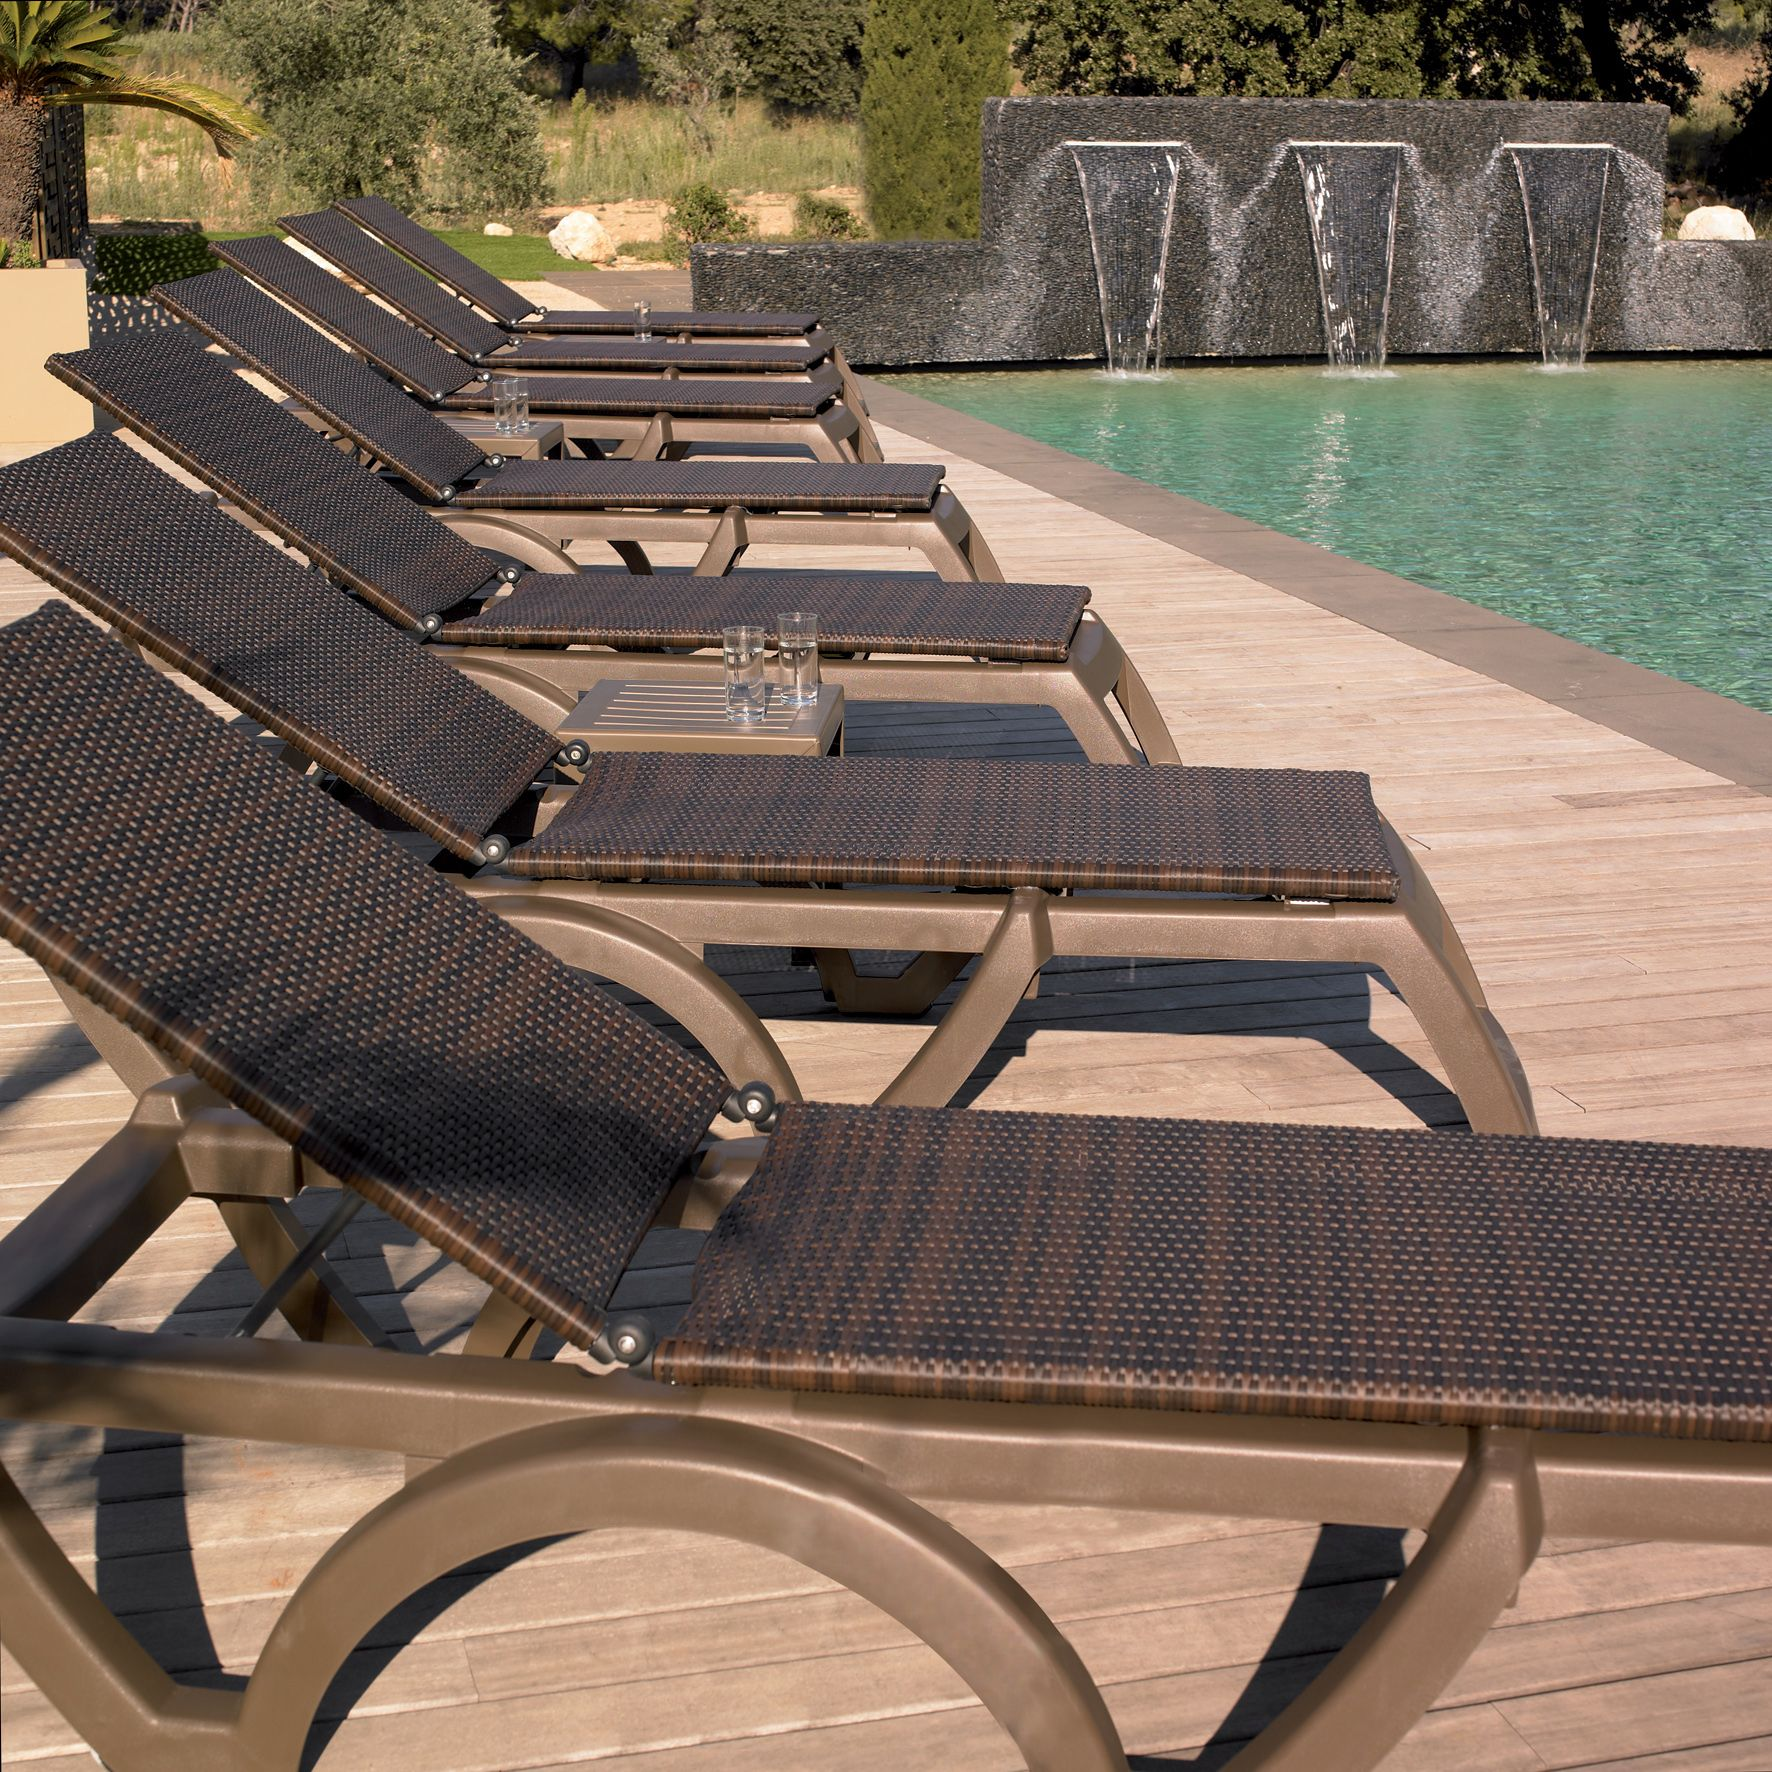 Pool Deck Chairs Java Pool Lounge Chair With Bronze Mist Frame And Espresso